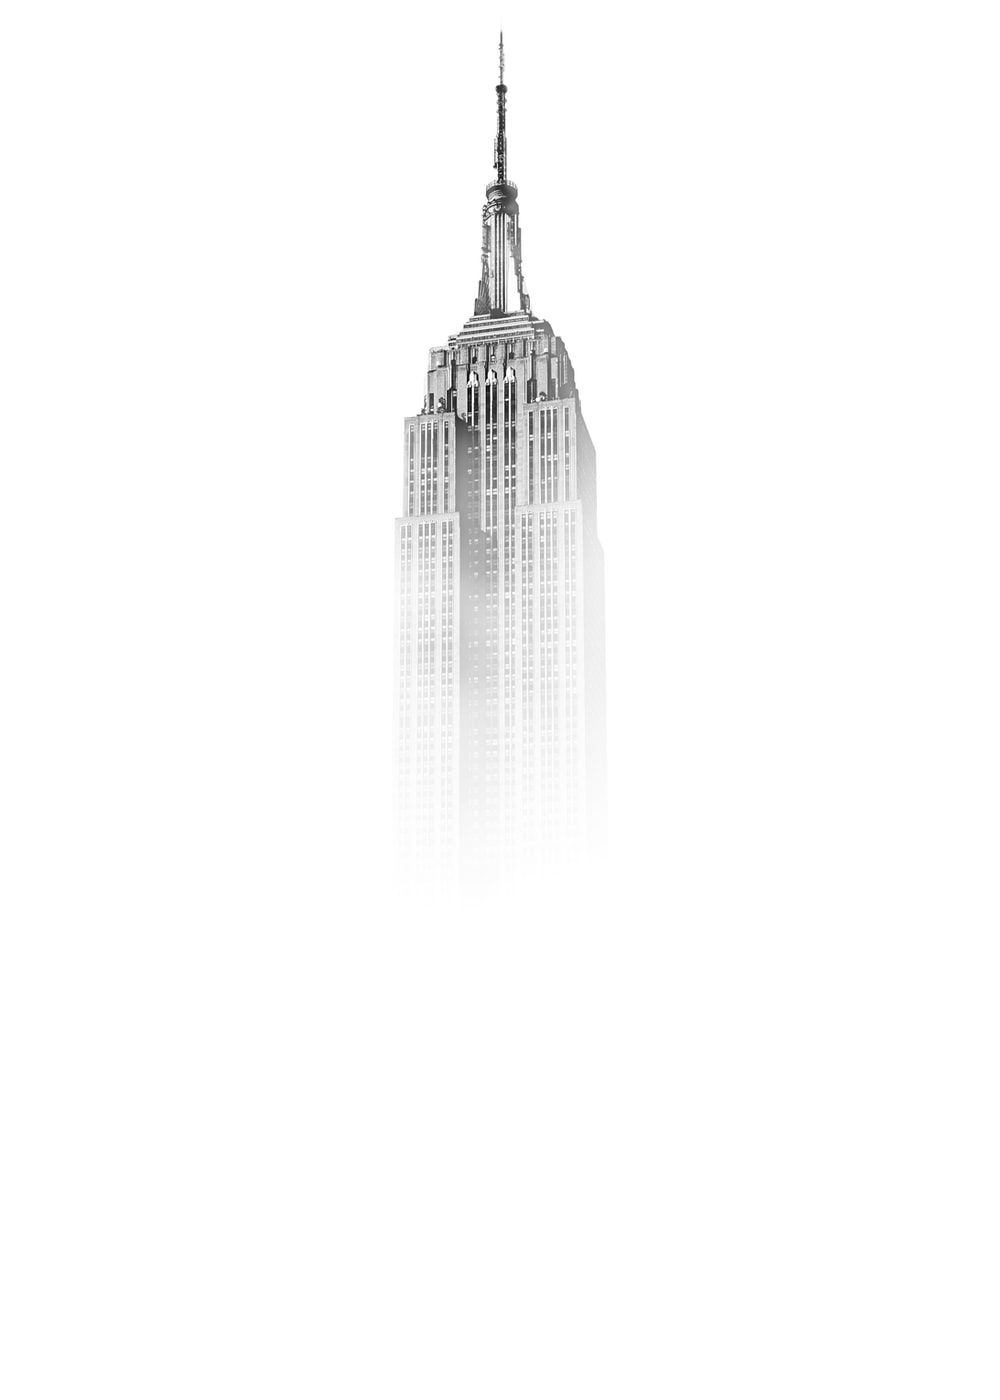 Empire State Building sketch